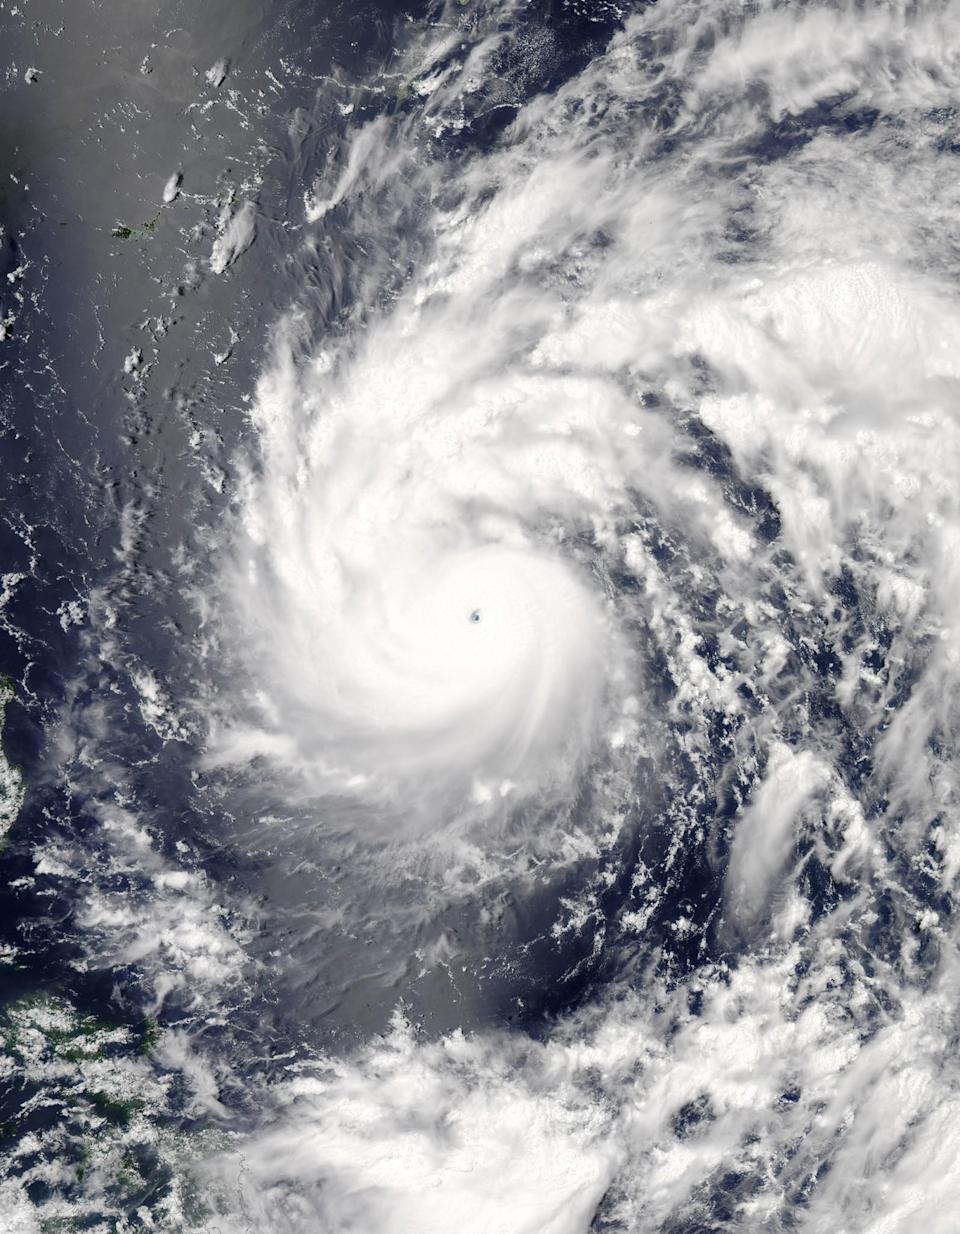 <p>This July 6, 2016, image provided by NASA shows Typhoon Nepartak as it approaches Taiwan and the Philippines. (Jeff Schmaltz/NASA/LANCE/EOSDIS Rapid Response via AP) </p>